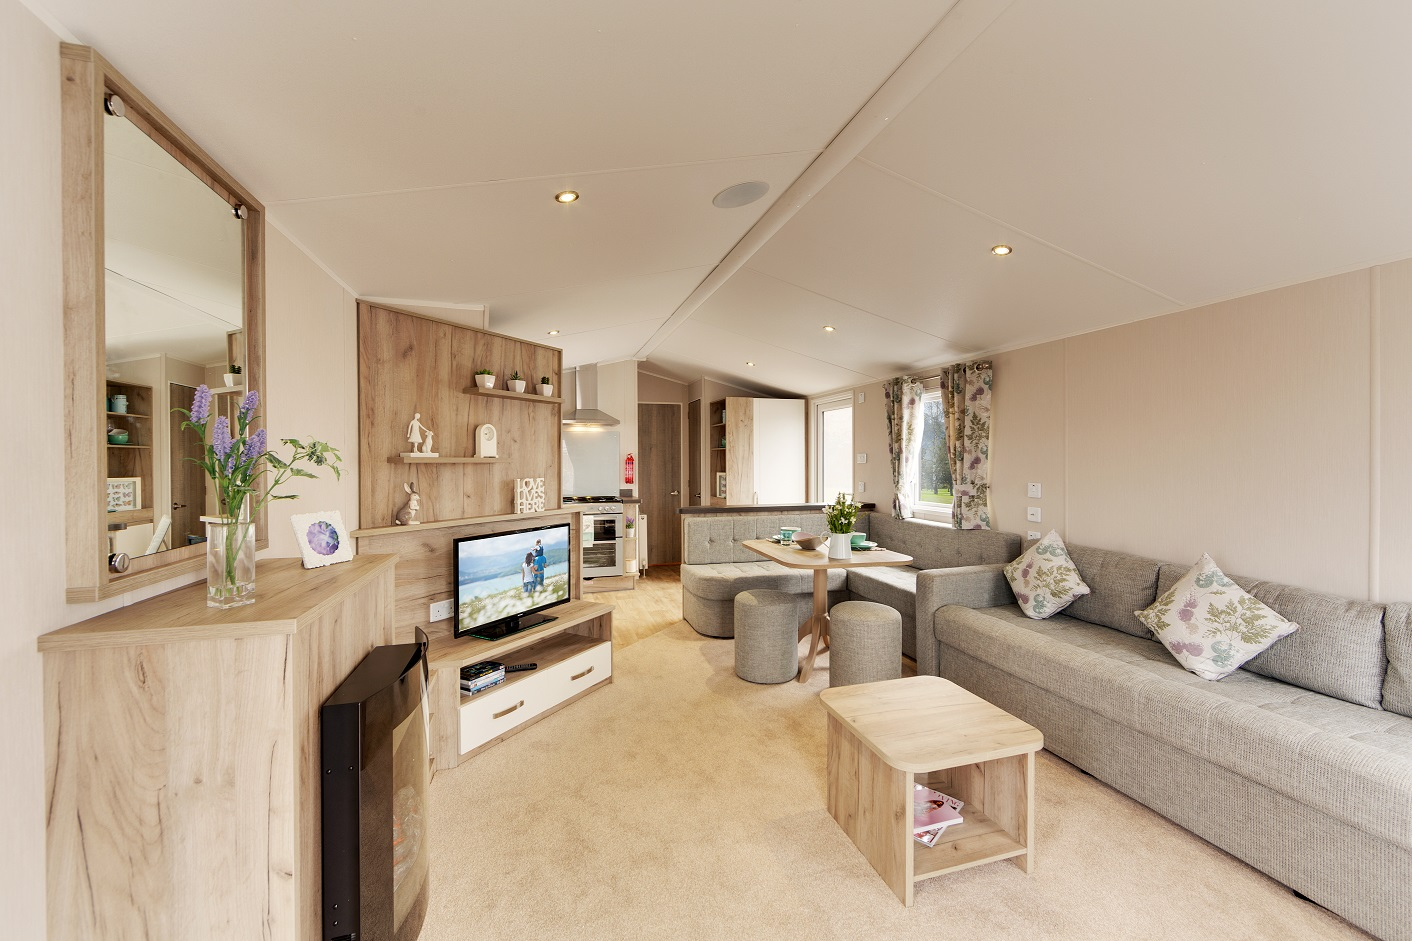 Willerby Skye - 3 Bedrooms: New Static Caravans and Holiday Homes for Sale, Langley Moor, Durham Large Image 1